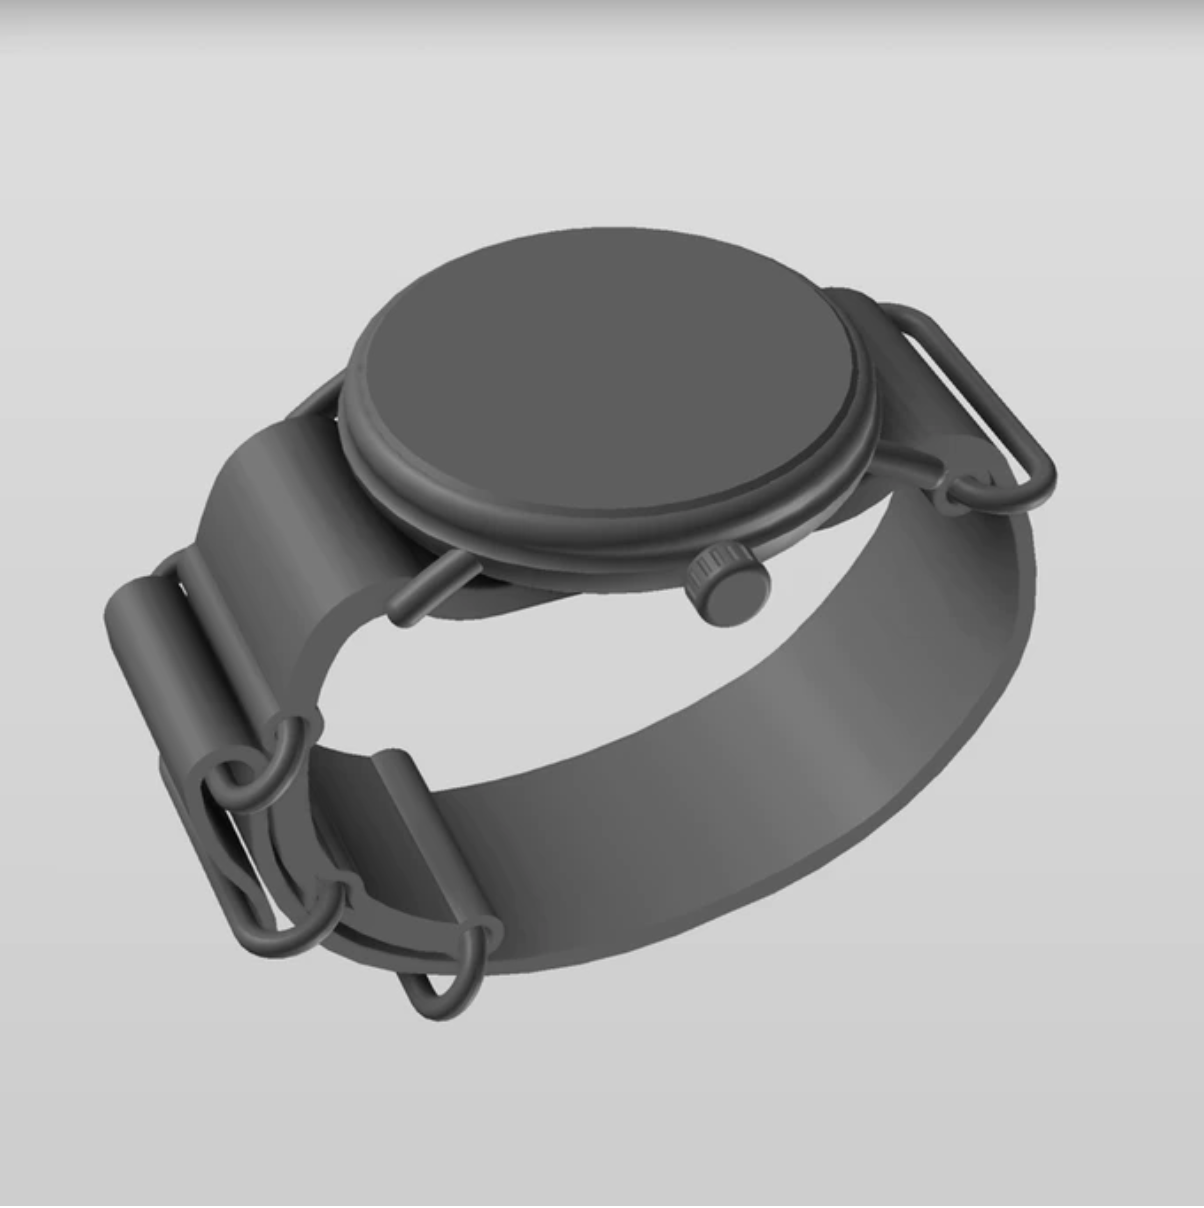 product concept render of custom watch